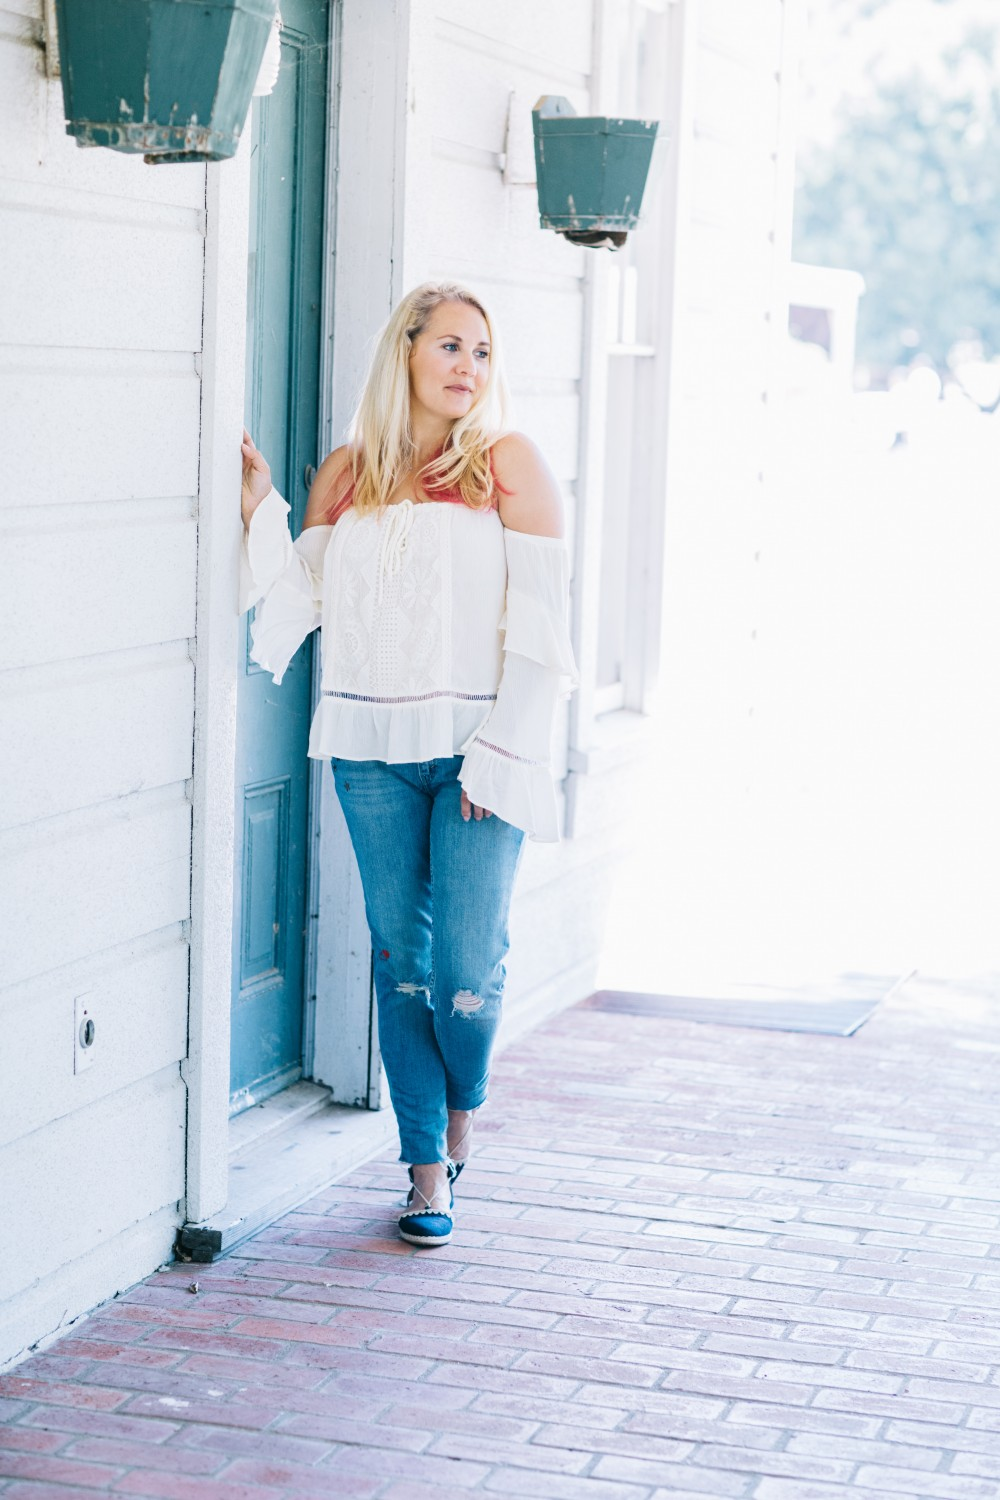 3 Rodeo Ready Outfits-California Rodeo Salinas-Outfit Inspiration-What to Wear to the Rodeo-What to Wear to a Country Concert-Have Need Want 25